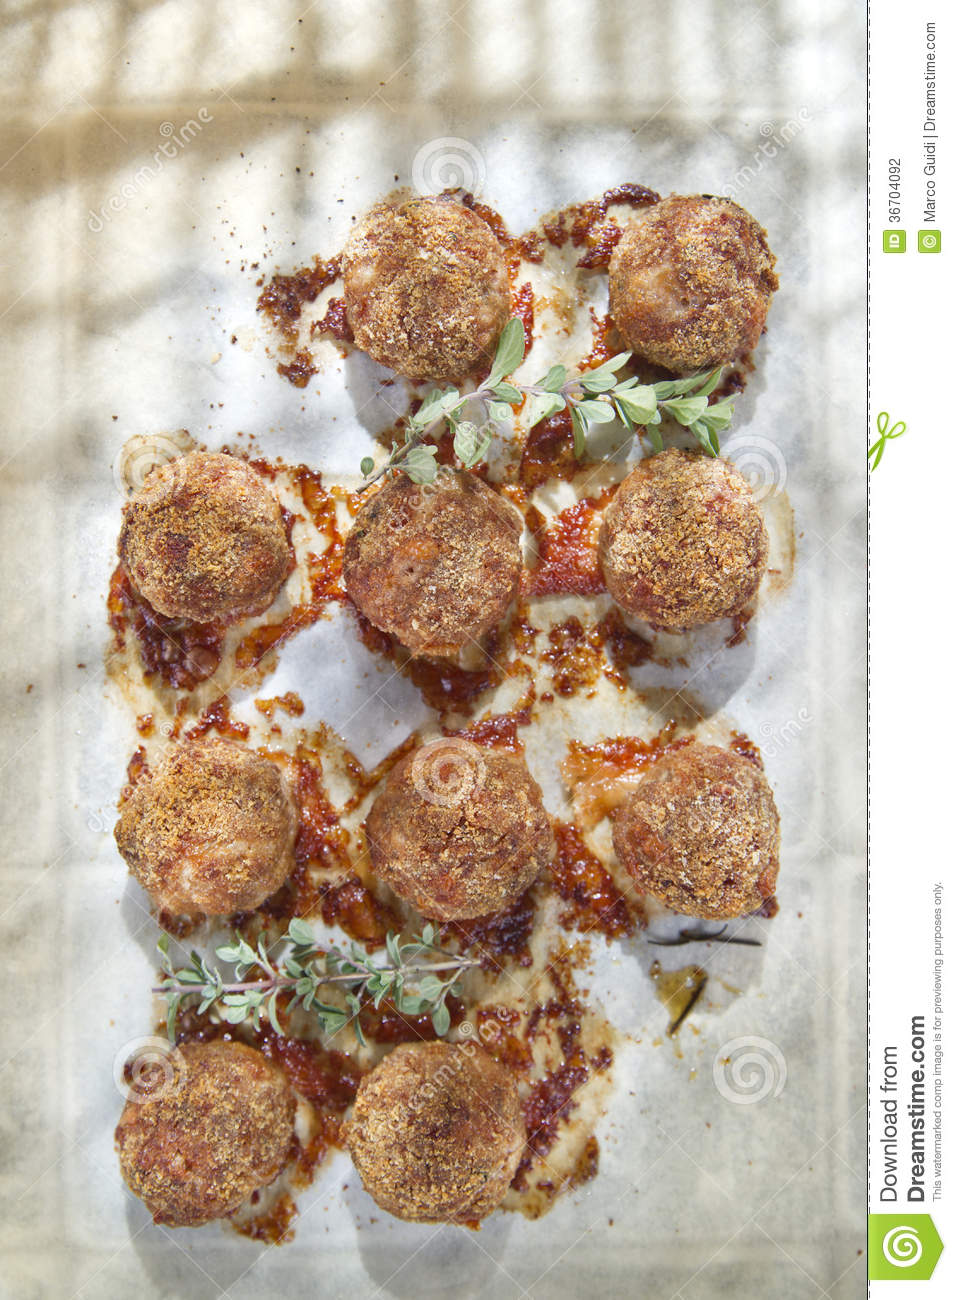 how to cook meatballs in oven